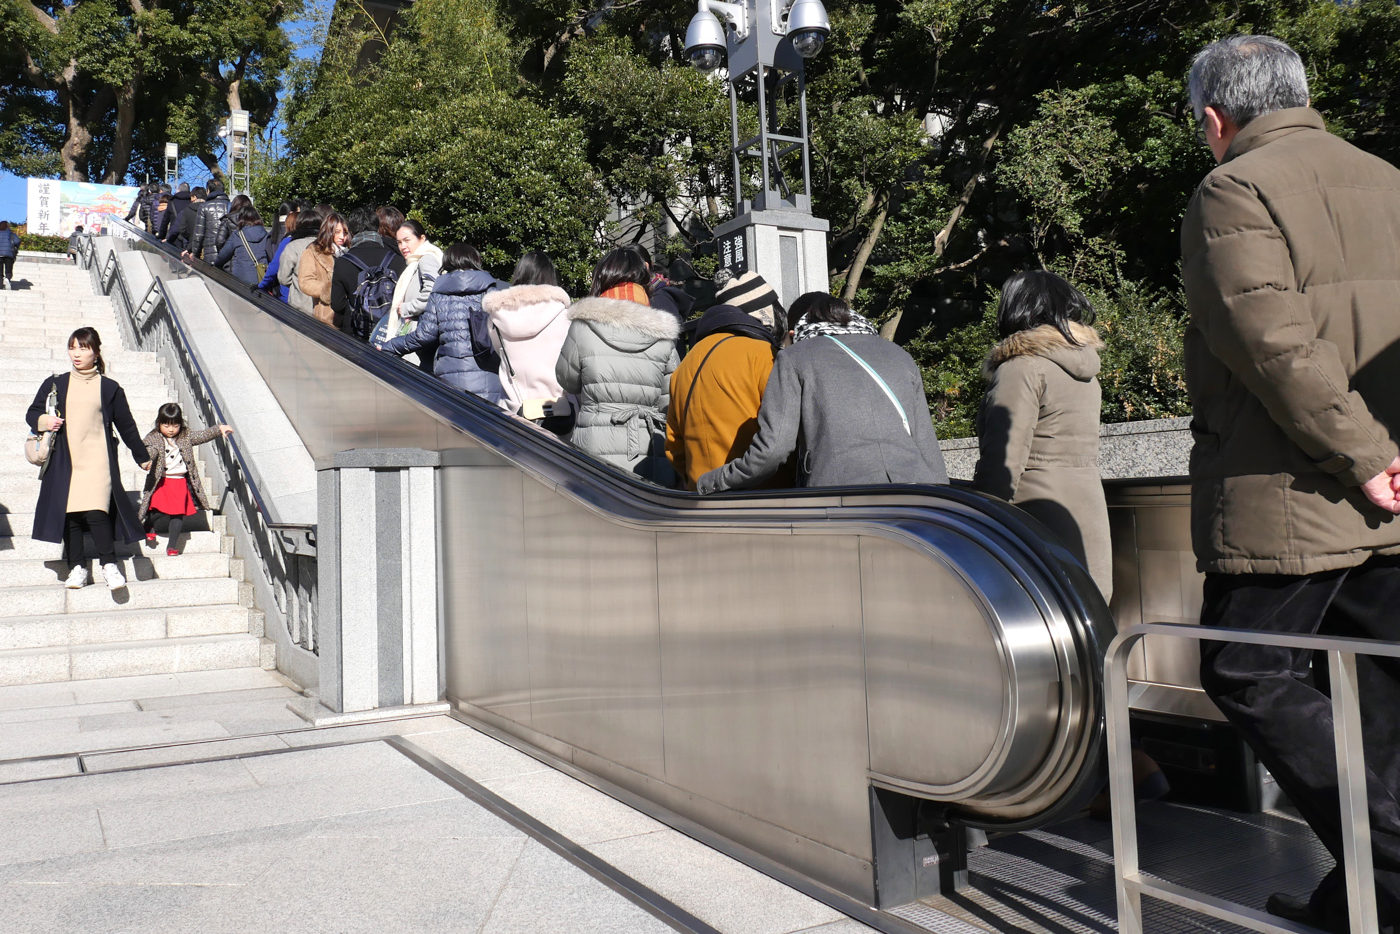 High-tech Japan: A shrine visit using an escalator!